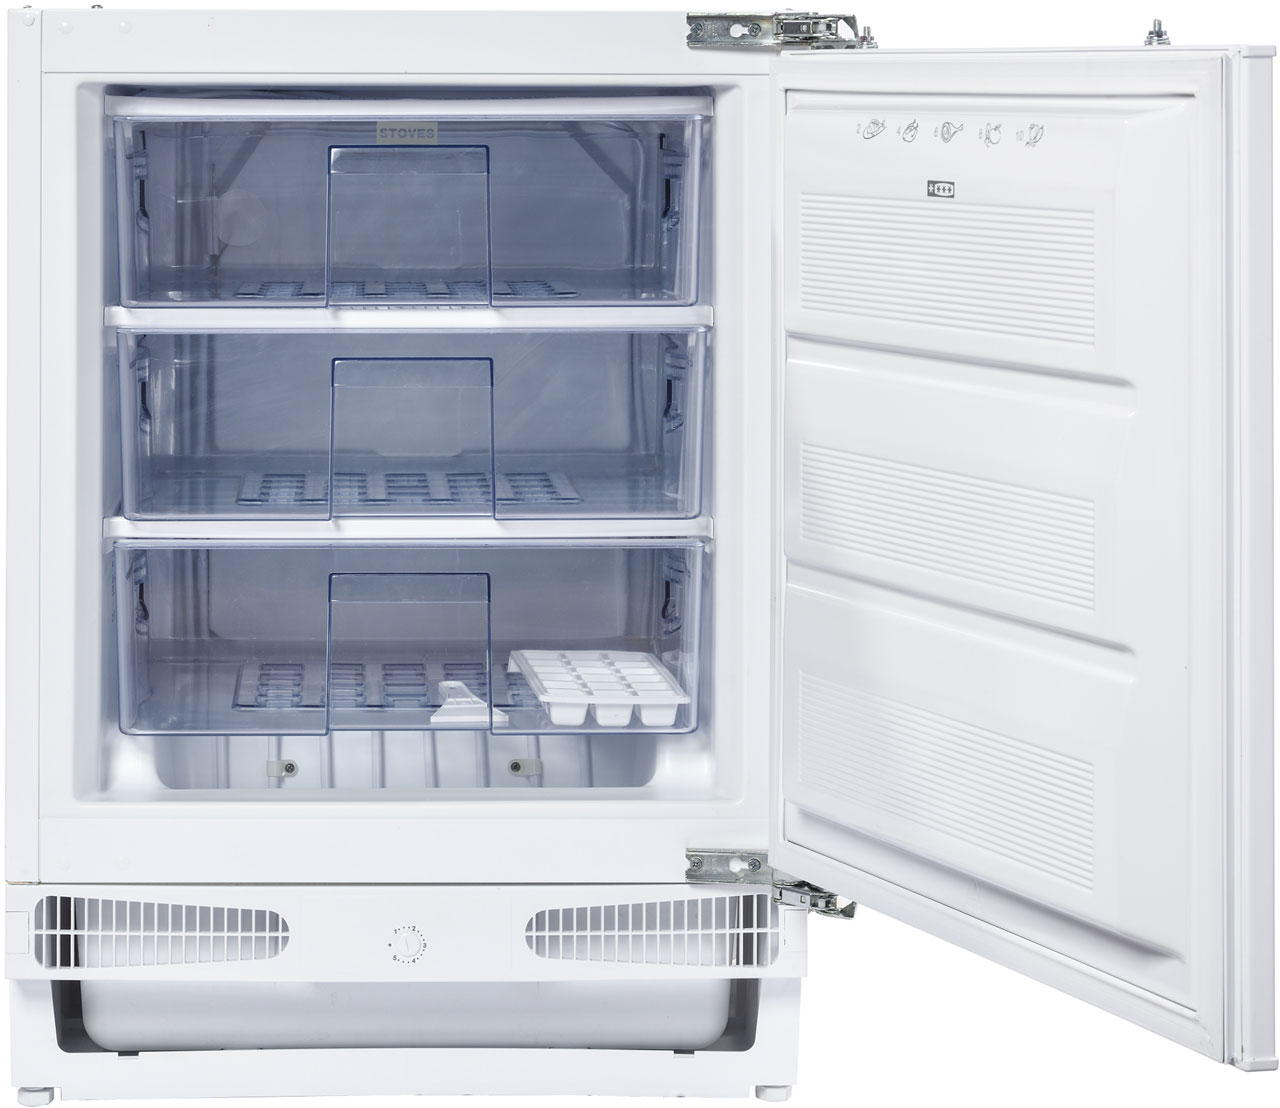 Stoves INTFRZ Integrated Under Counter Freezer review